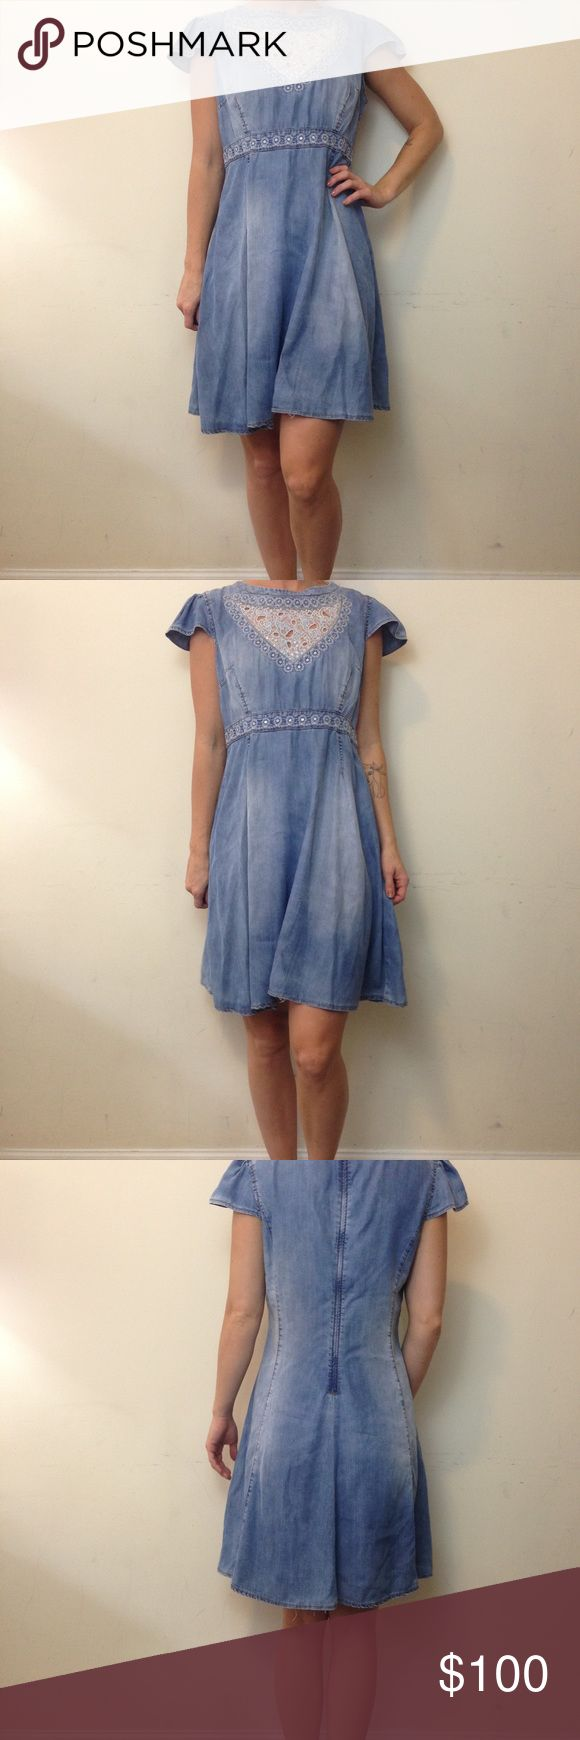 Love Moschino Denim Sequin Cut Out Skater Dress Love Moschino Denim dress with short sleeves and a cut out Panel in the front and Sequin Detail- has some pink fading on the side waist very faint from a handbag that rubbed off. Super cute and high fashion. Size large and is perfect for all seasons! Love Moschino Dresses